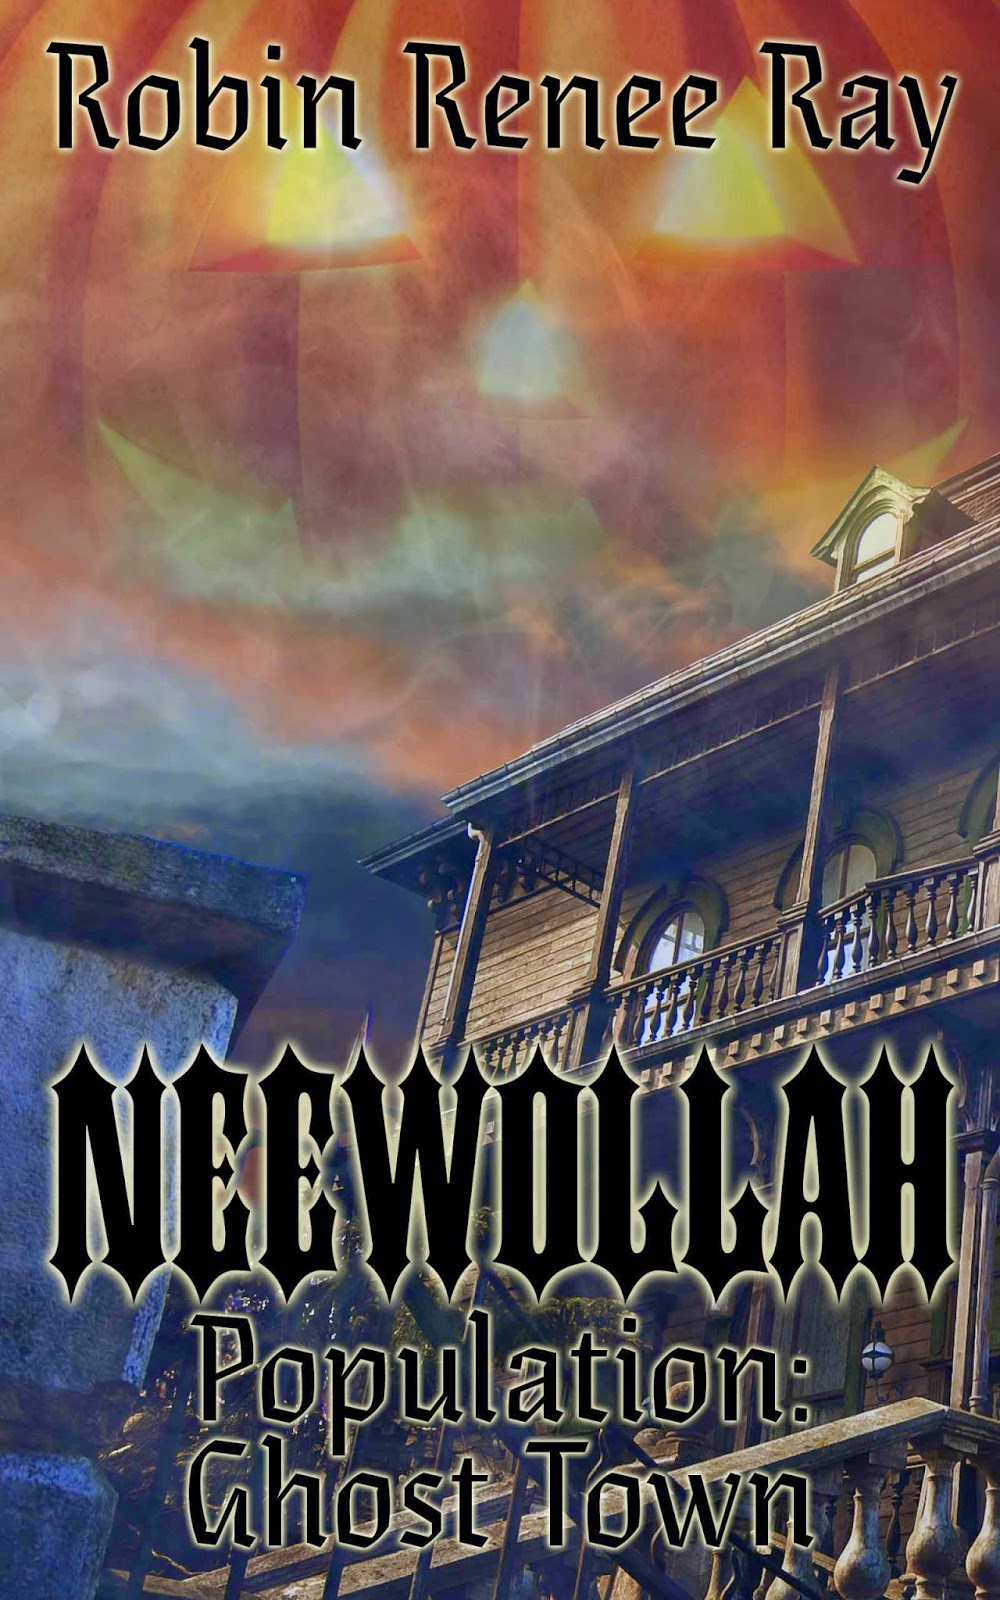 http://www.amazon.com/Neewalloh-Population-Robin-Renee-Ray-ebook/dp/B00OUDL1M4/ref=sr_1_2?s=digital-text&ie=UTF8&qid=1414397075&sr=1-2&keywords=neewollah